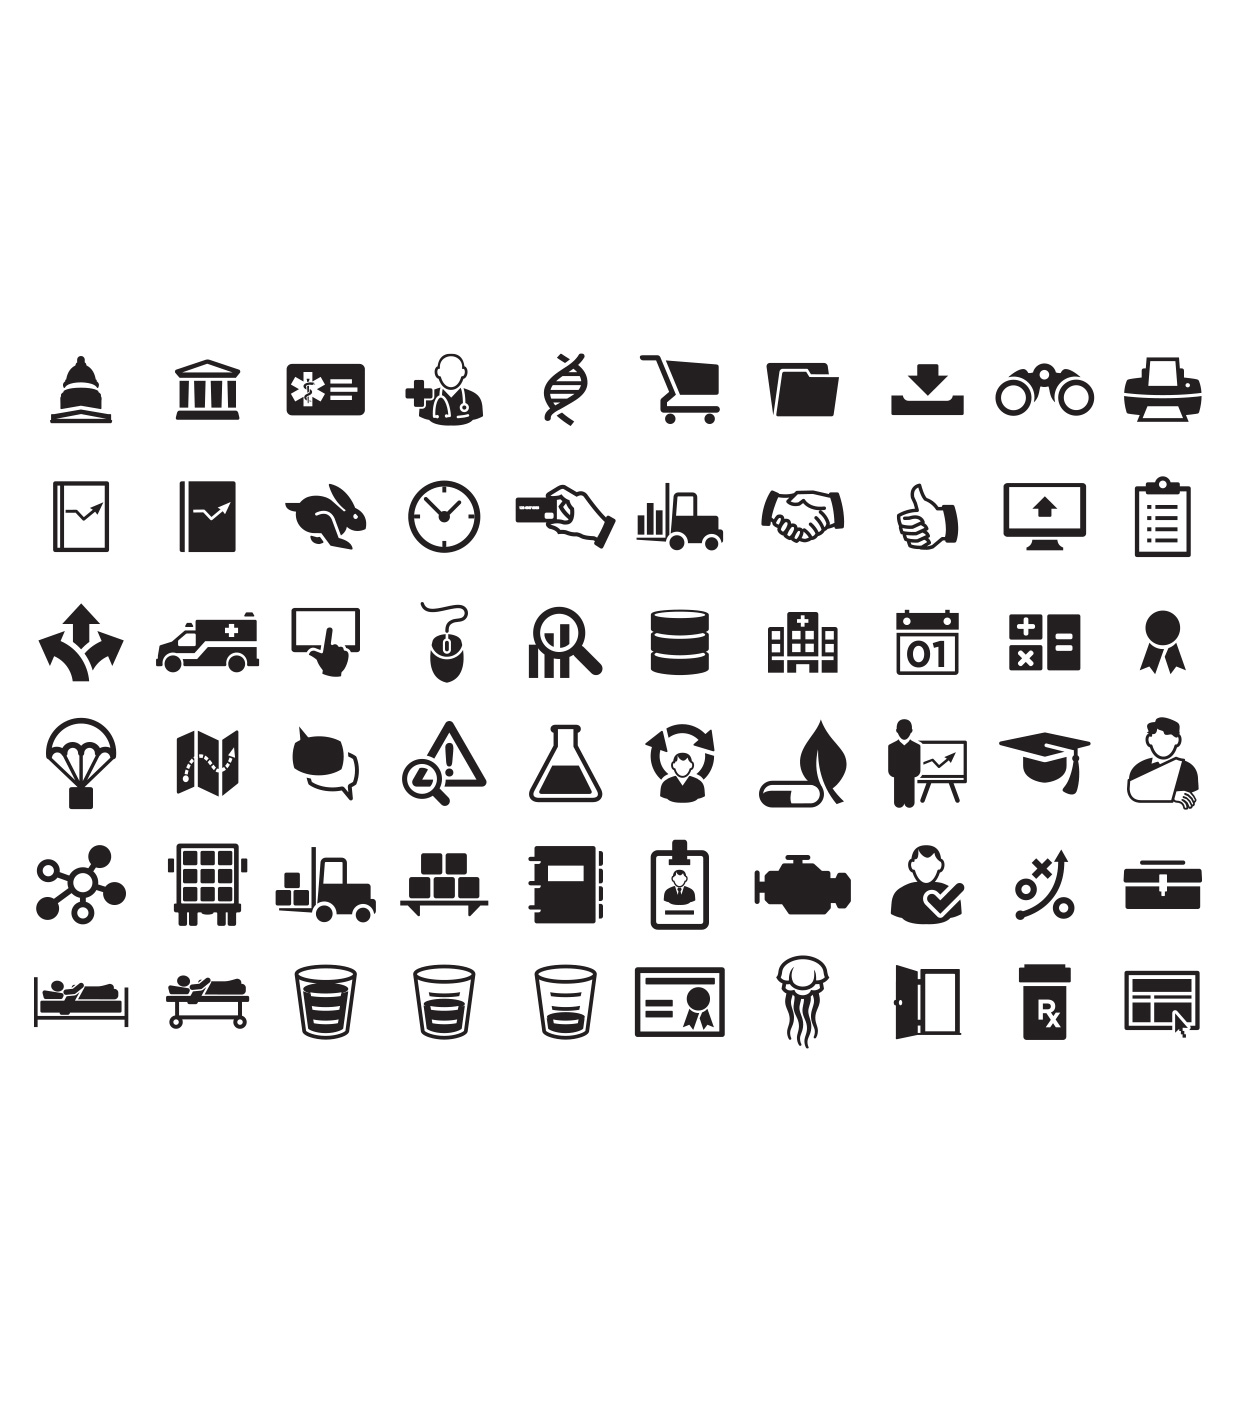 Select detail of icons for Truven Health Analytics